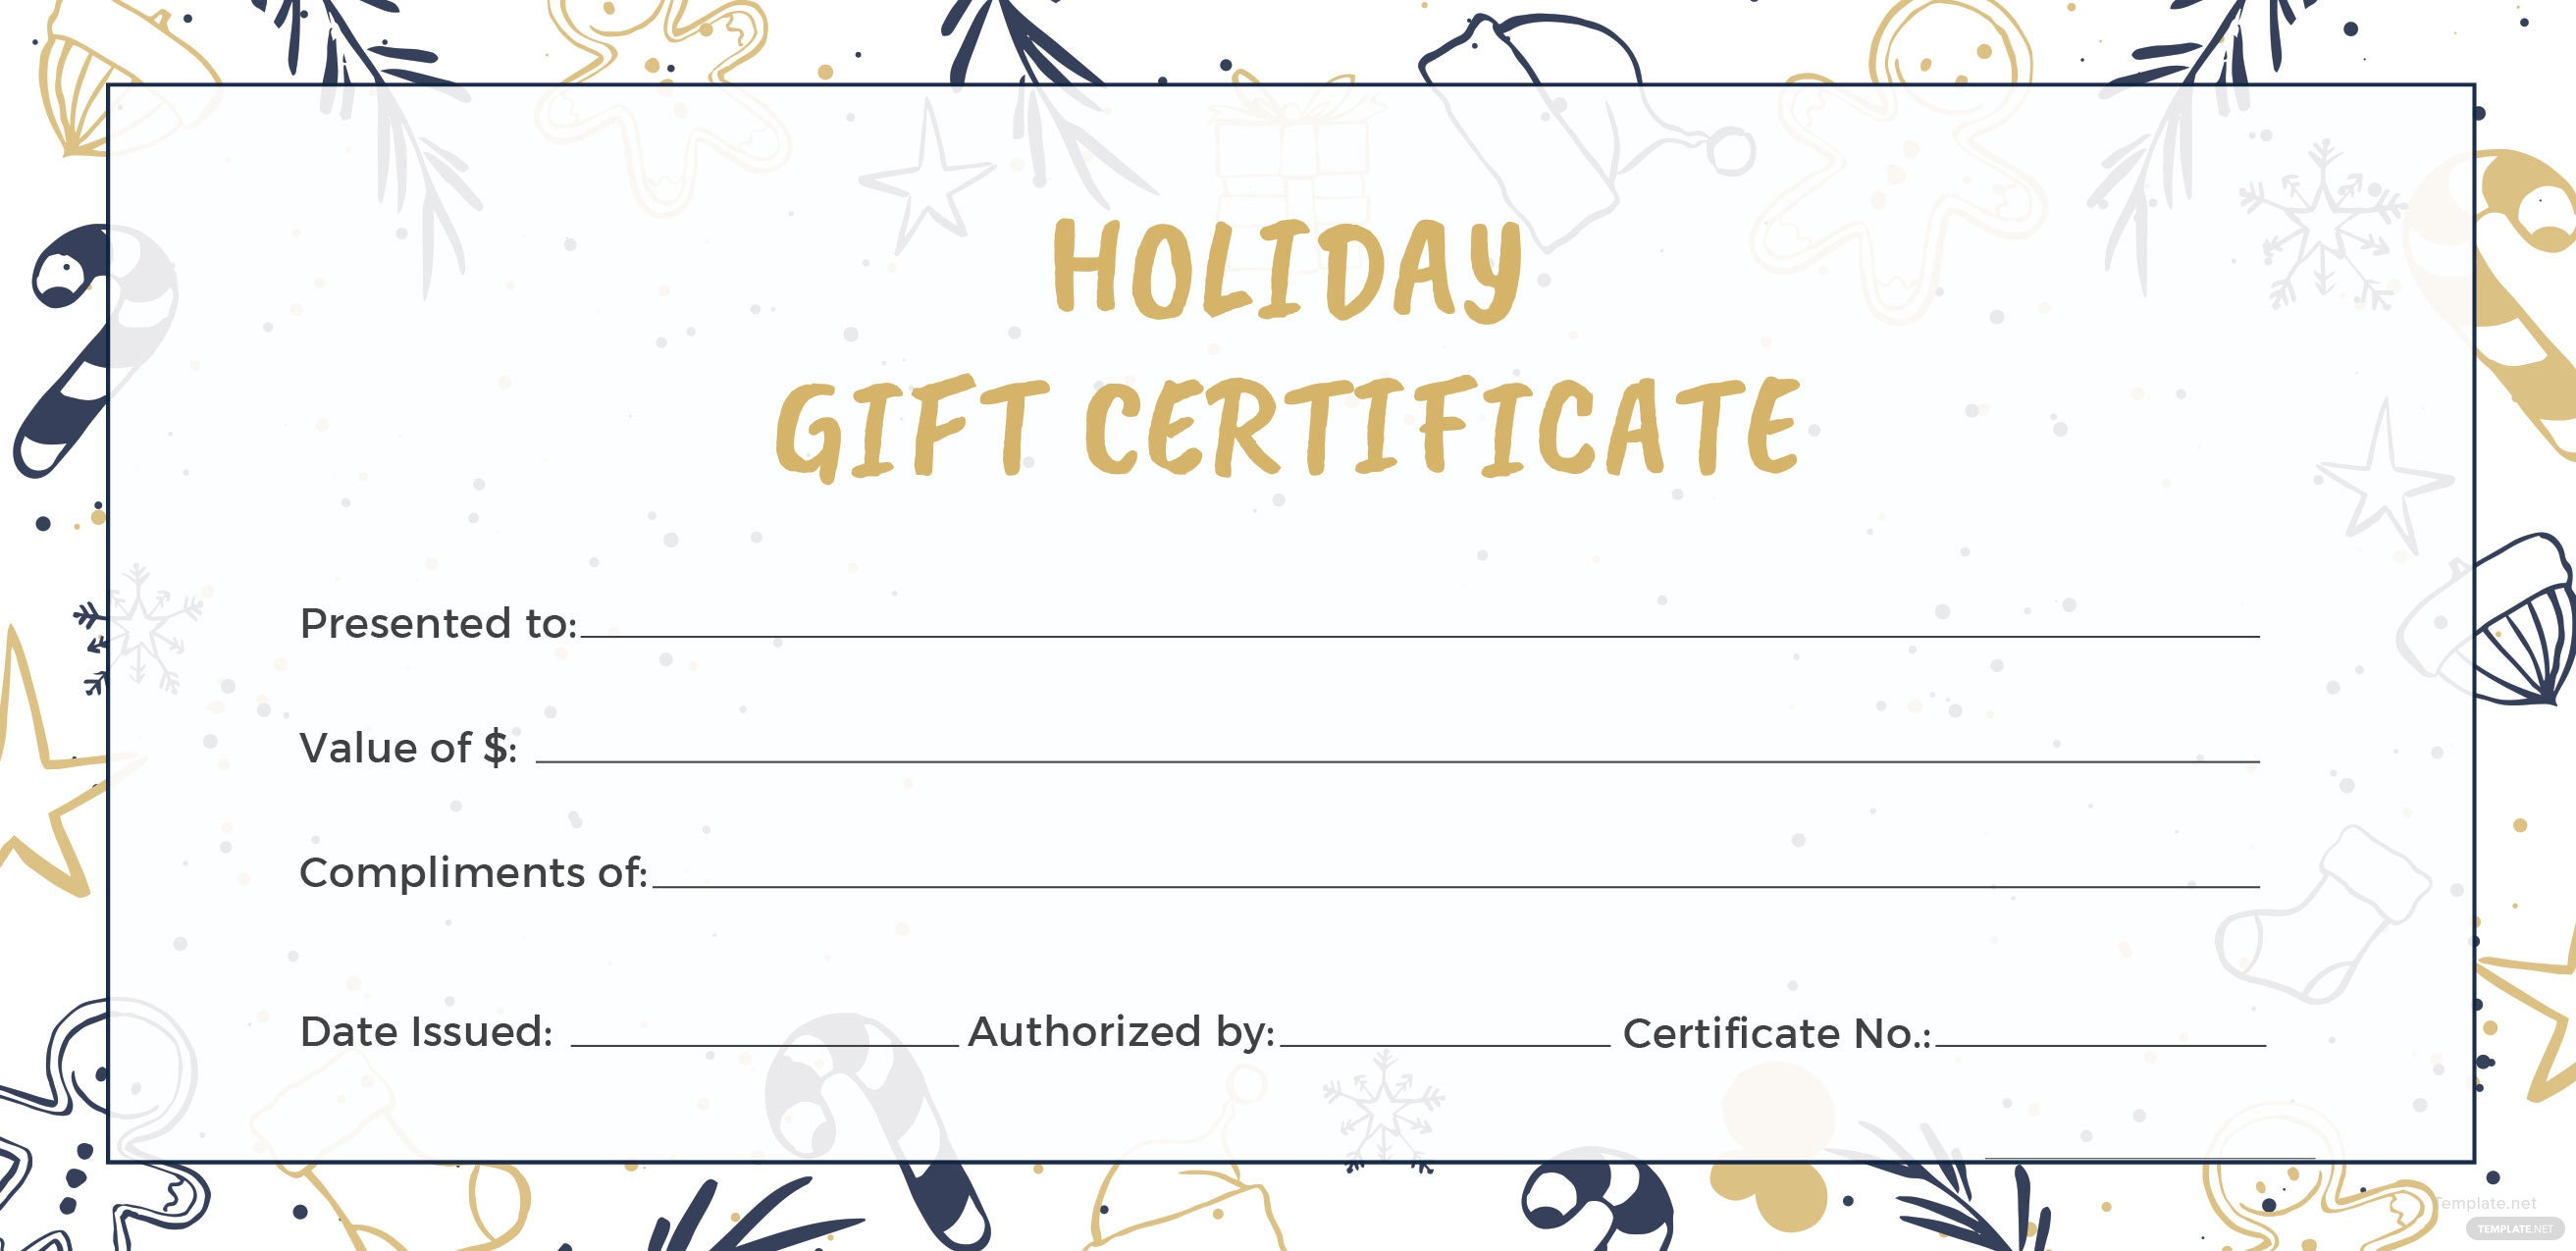 Free Holiday Gift Certificate Template in Adobe ...